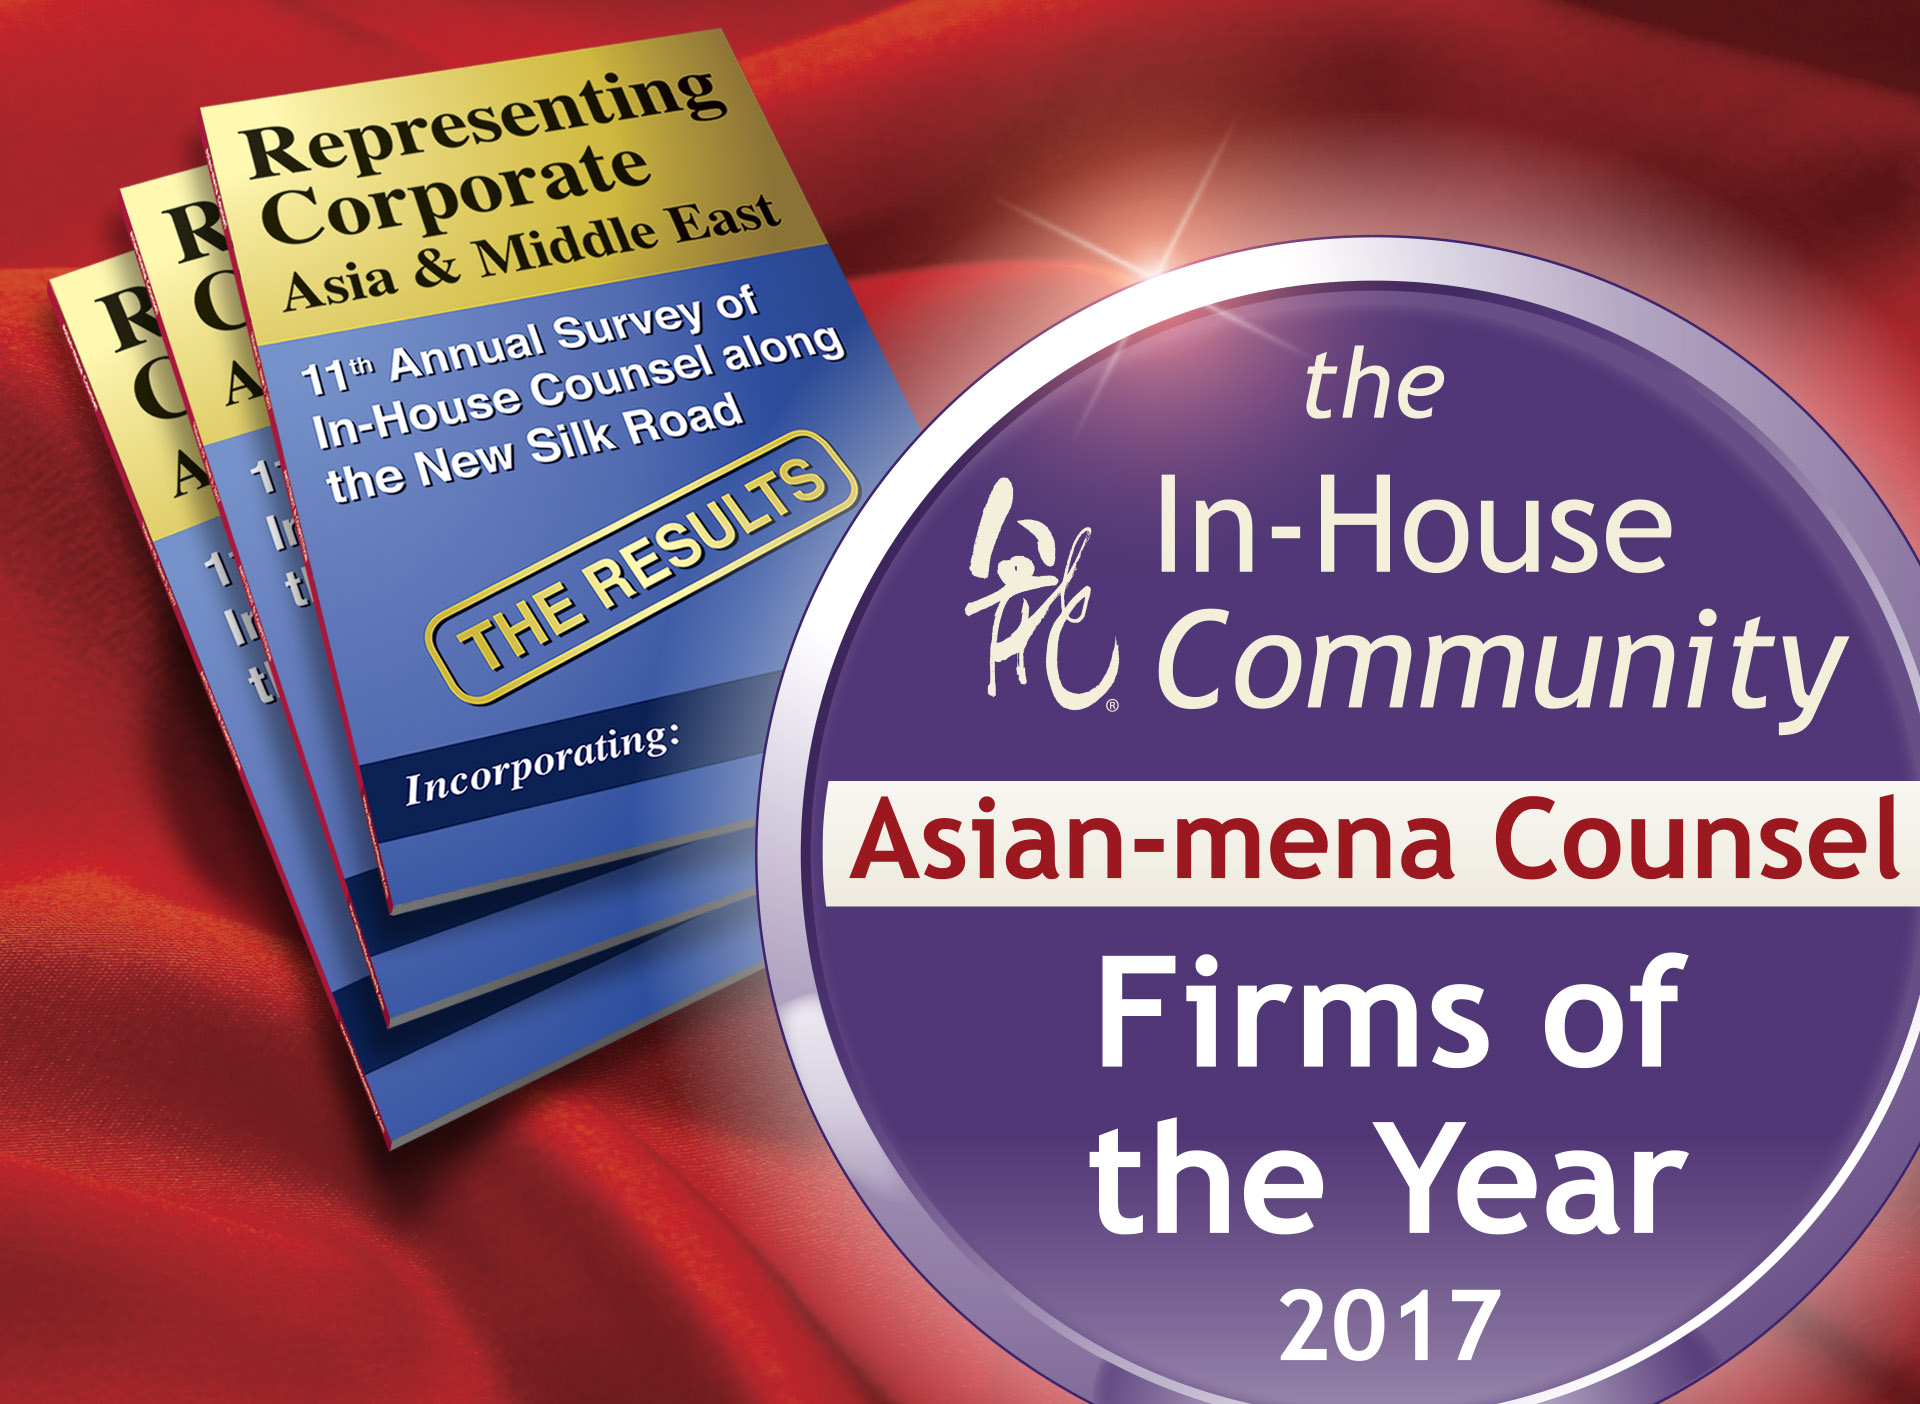 Firms of the Year 2017